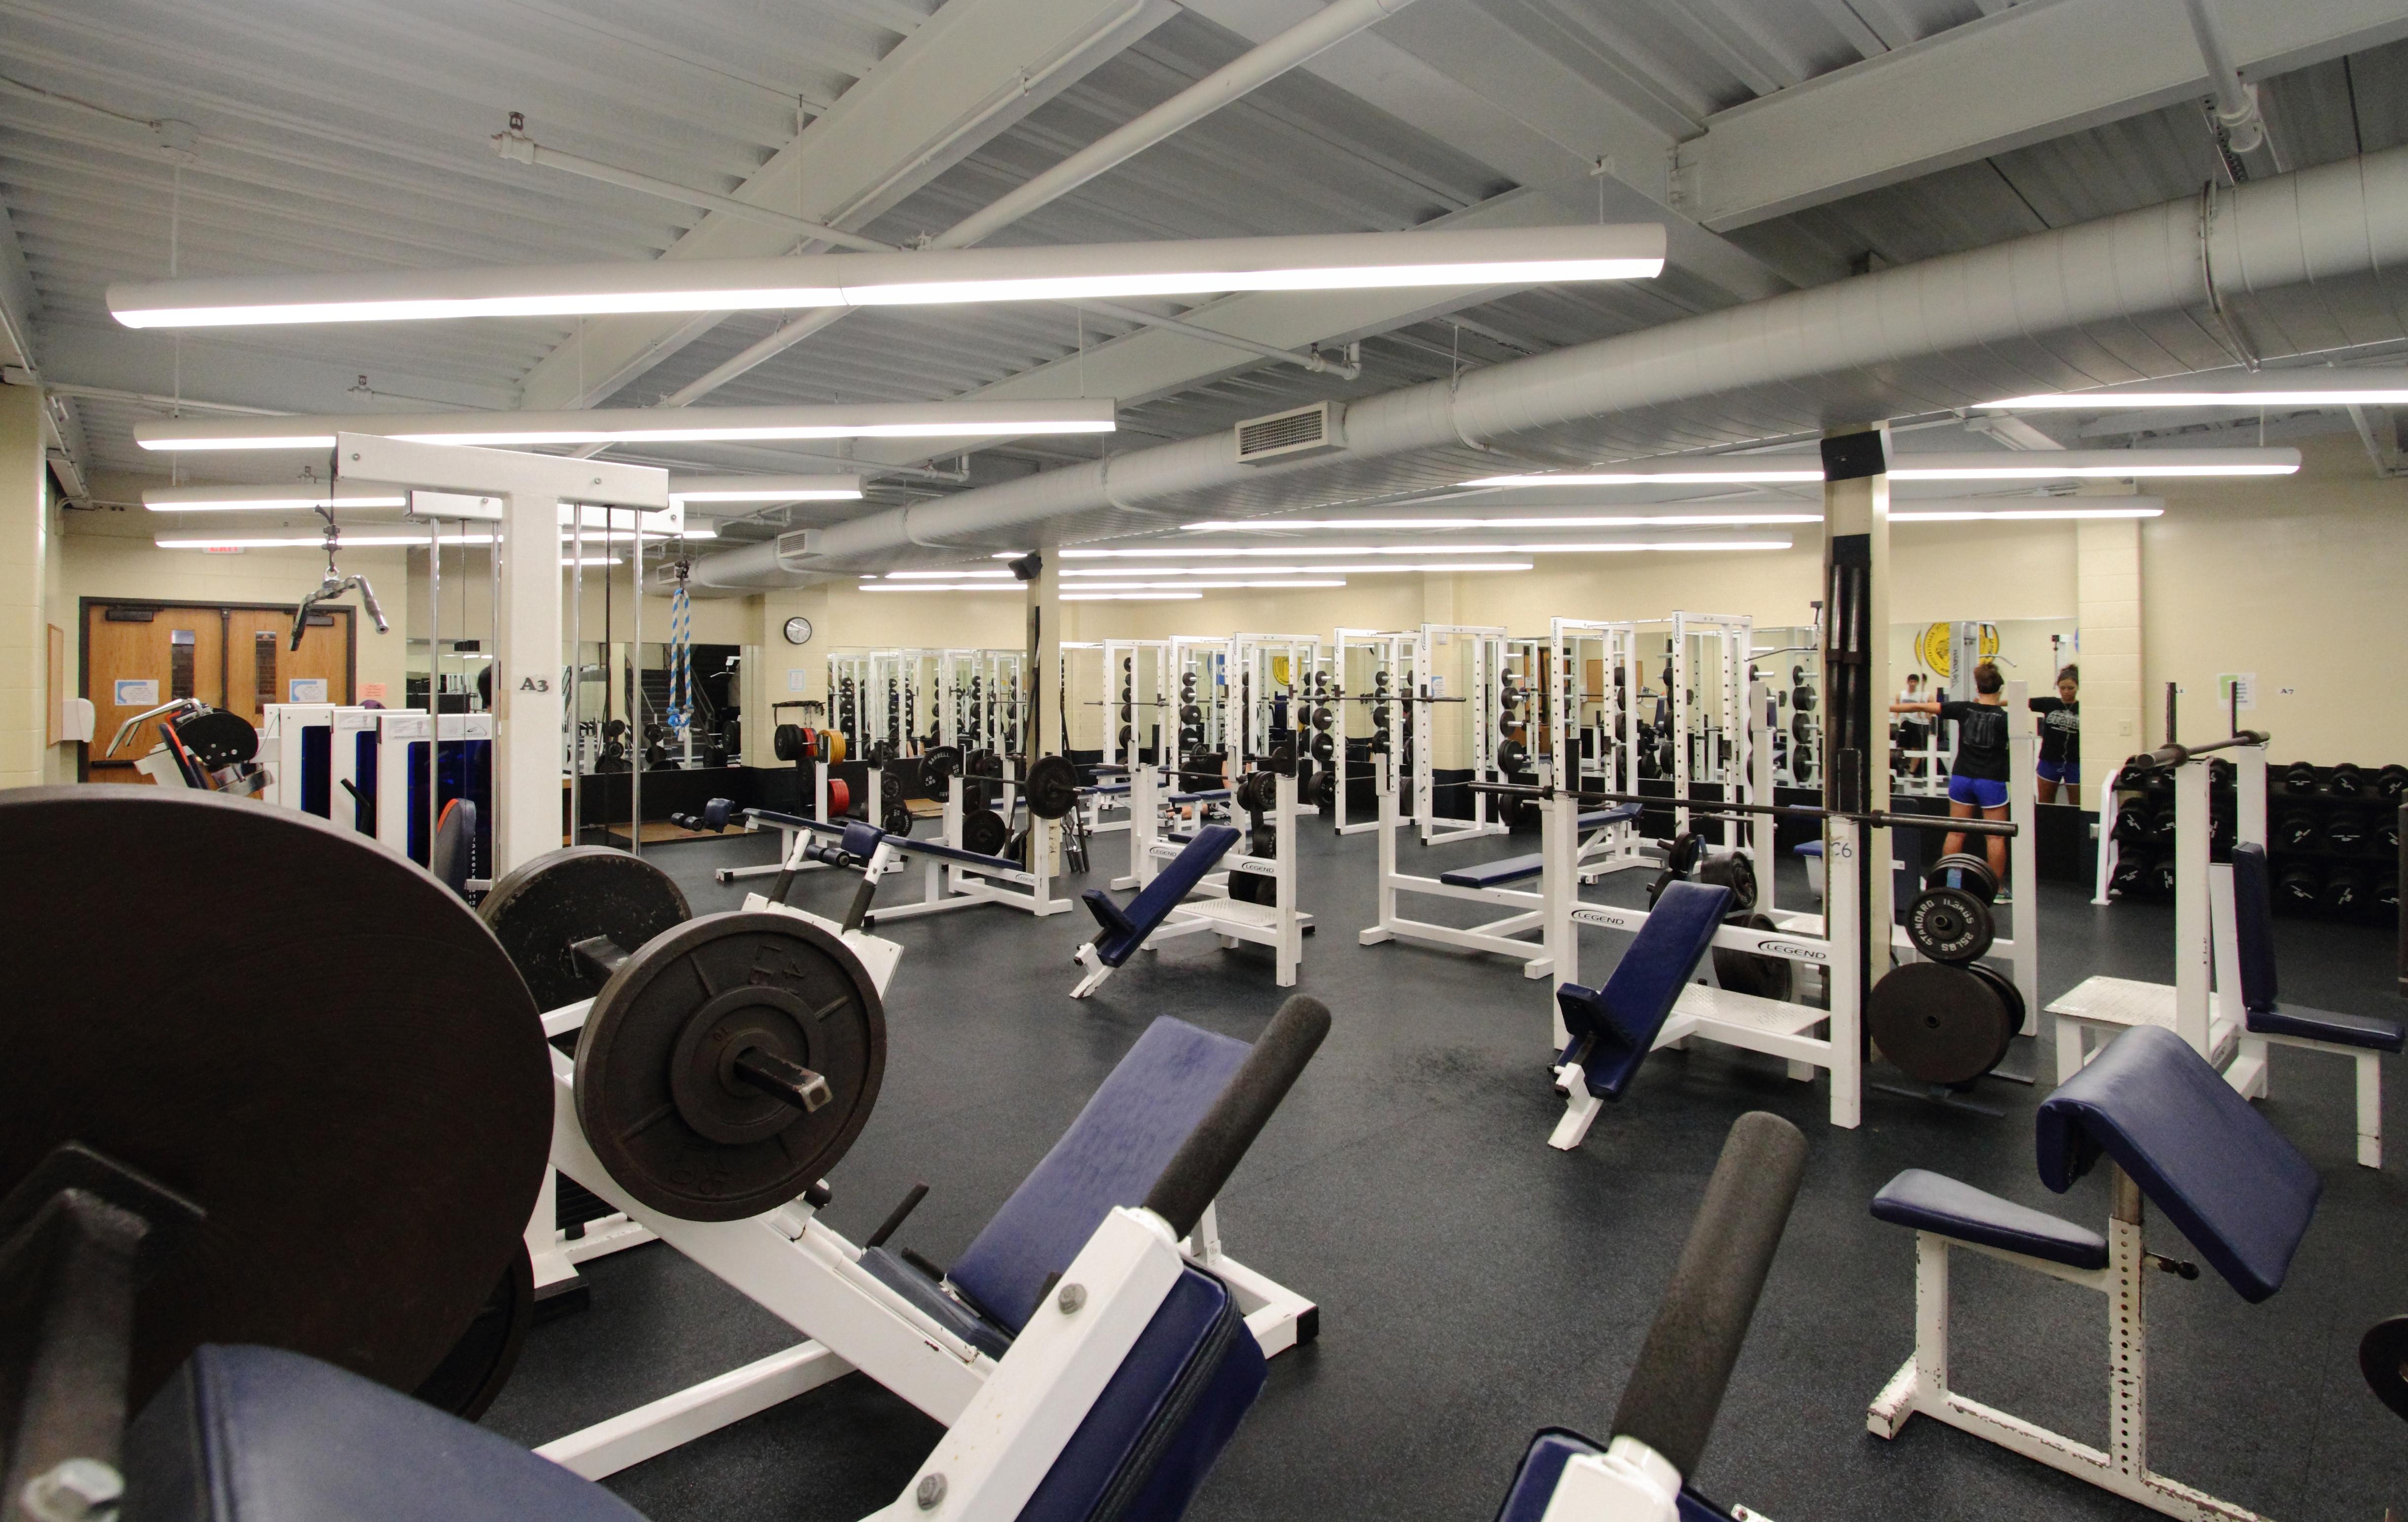 The weight room offers a wide variety of machines and weights.